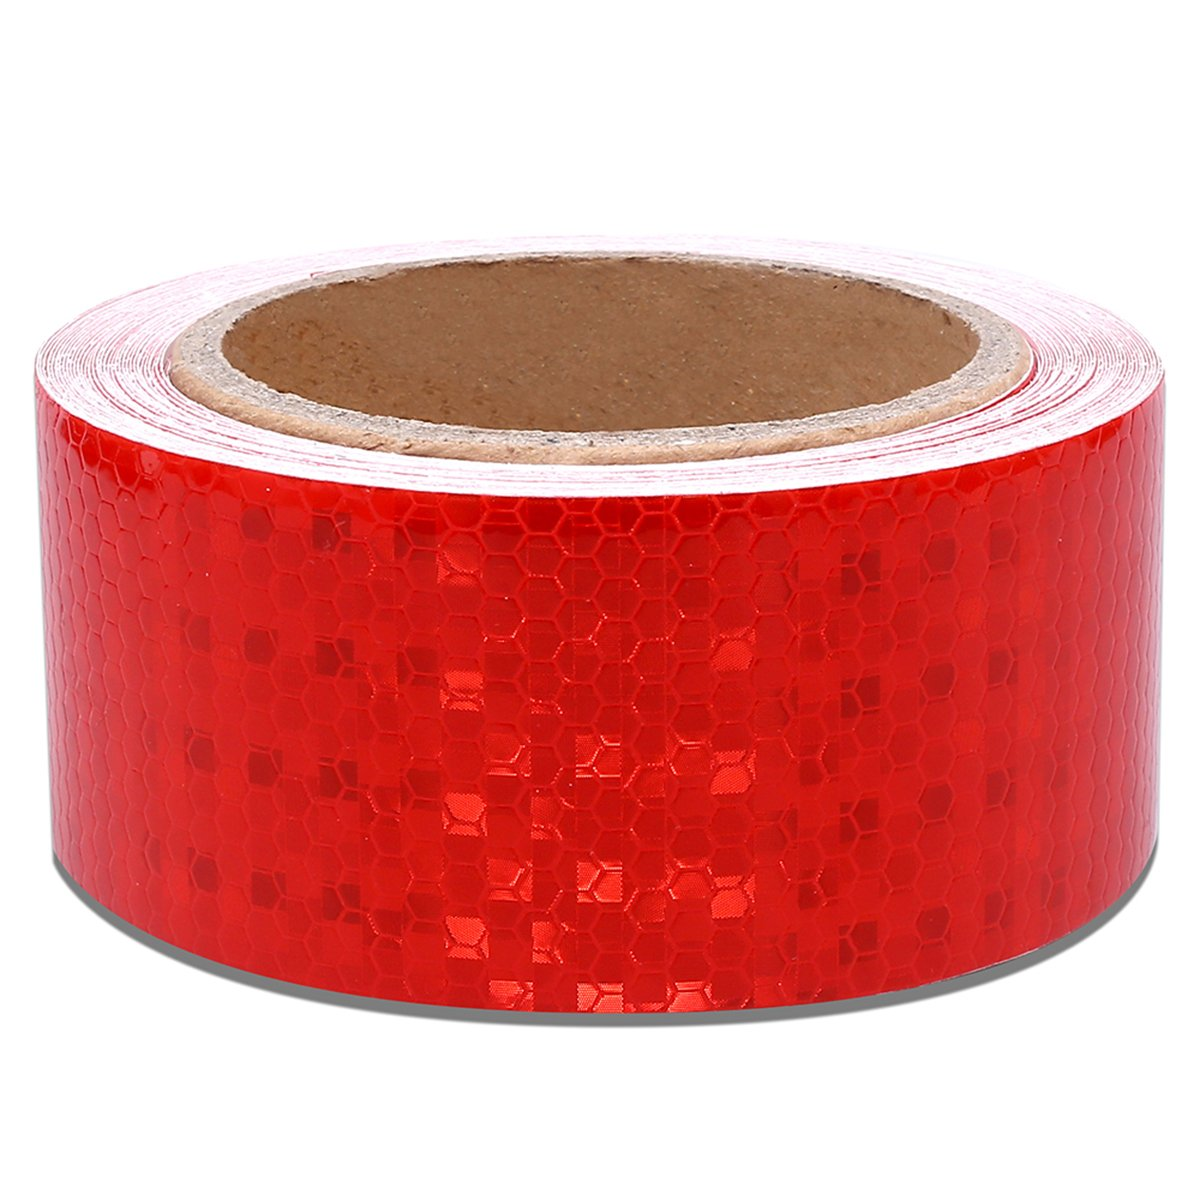 2'' X 30 Feet Red Reflective Safety Hazard Warning Caution Tape Adhsive Waterproof - Reflector Tape Red For Trailers Vehicles